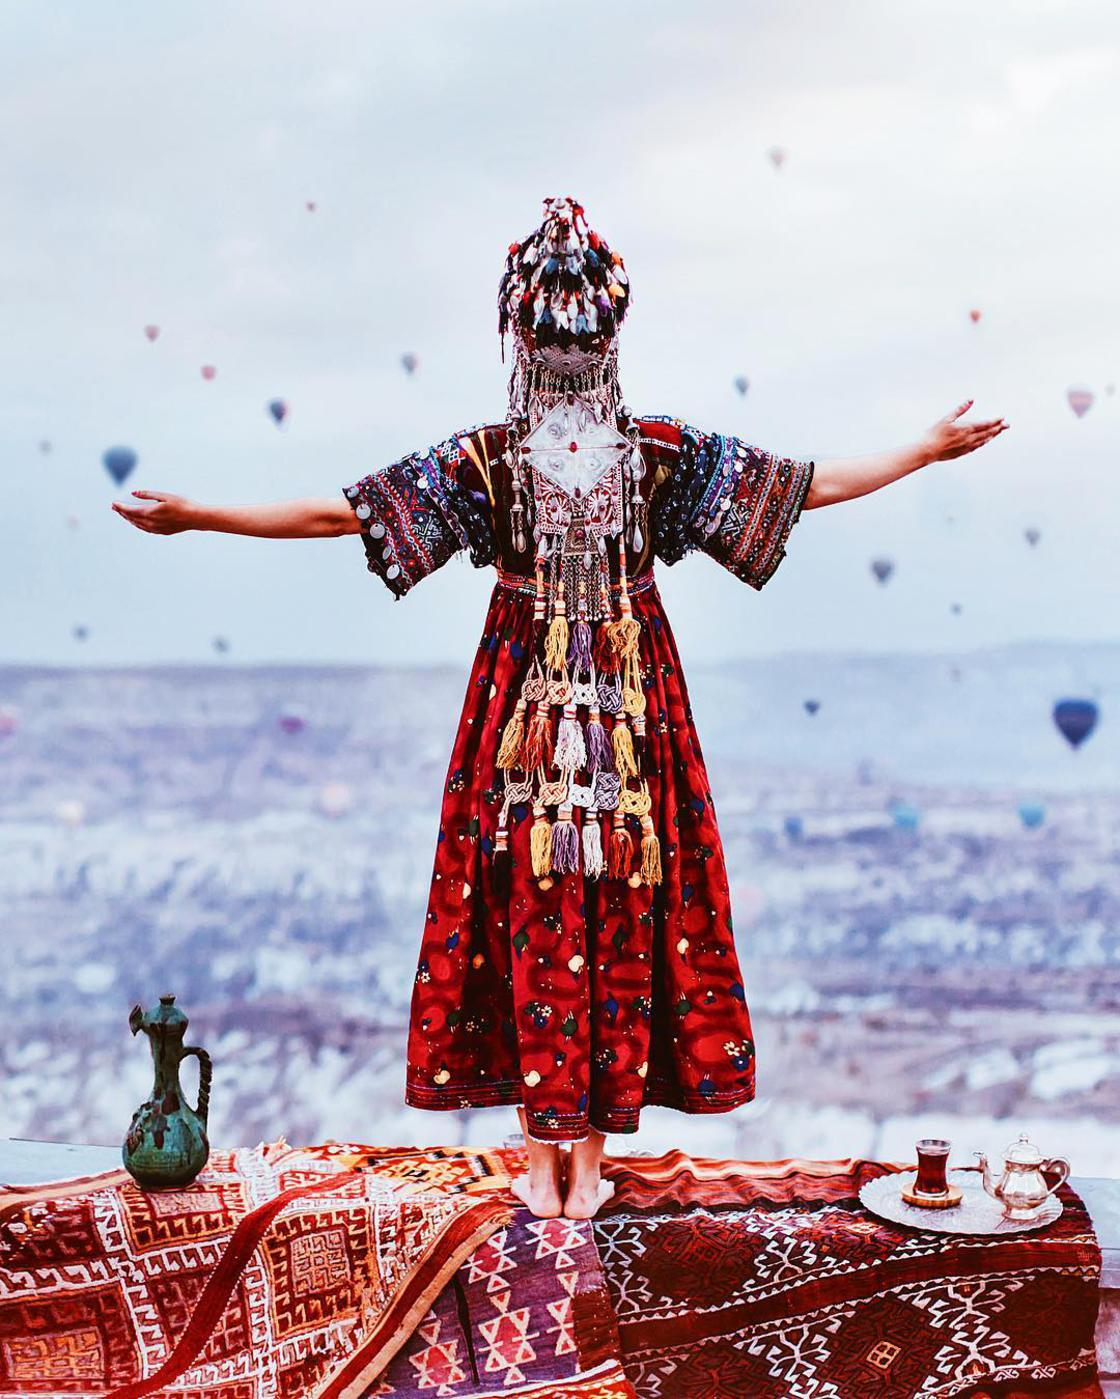 Flying Dress - She sublimates the world with aerial dresses